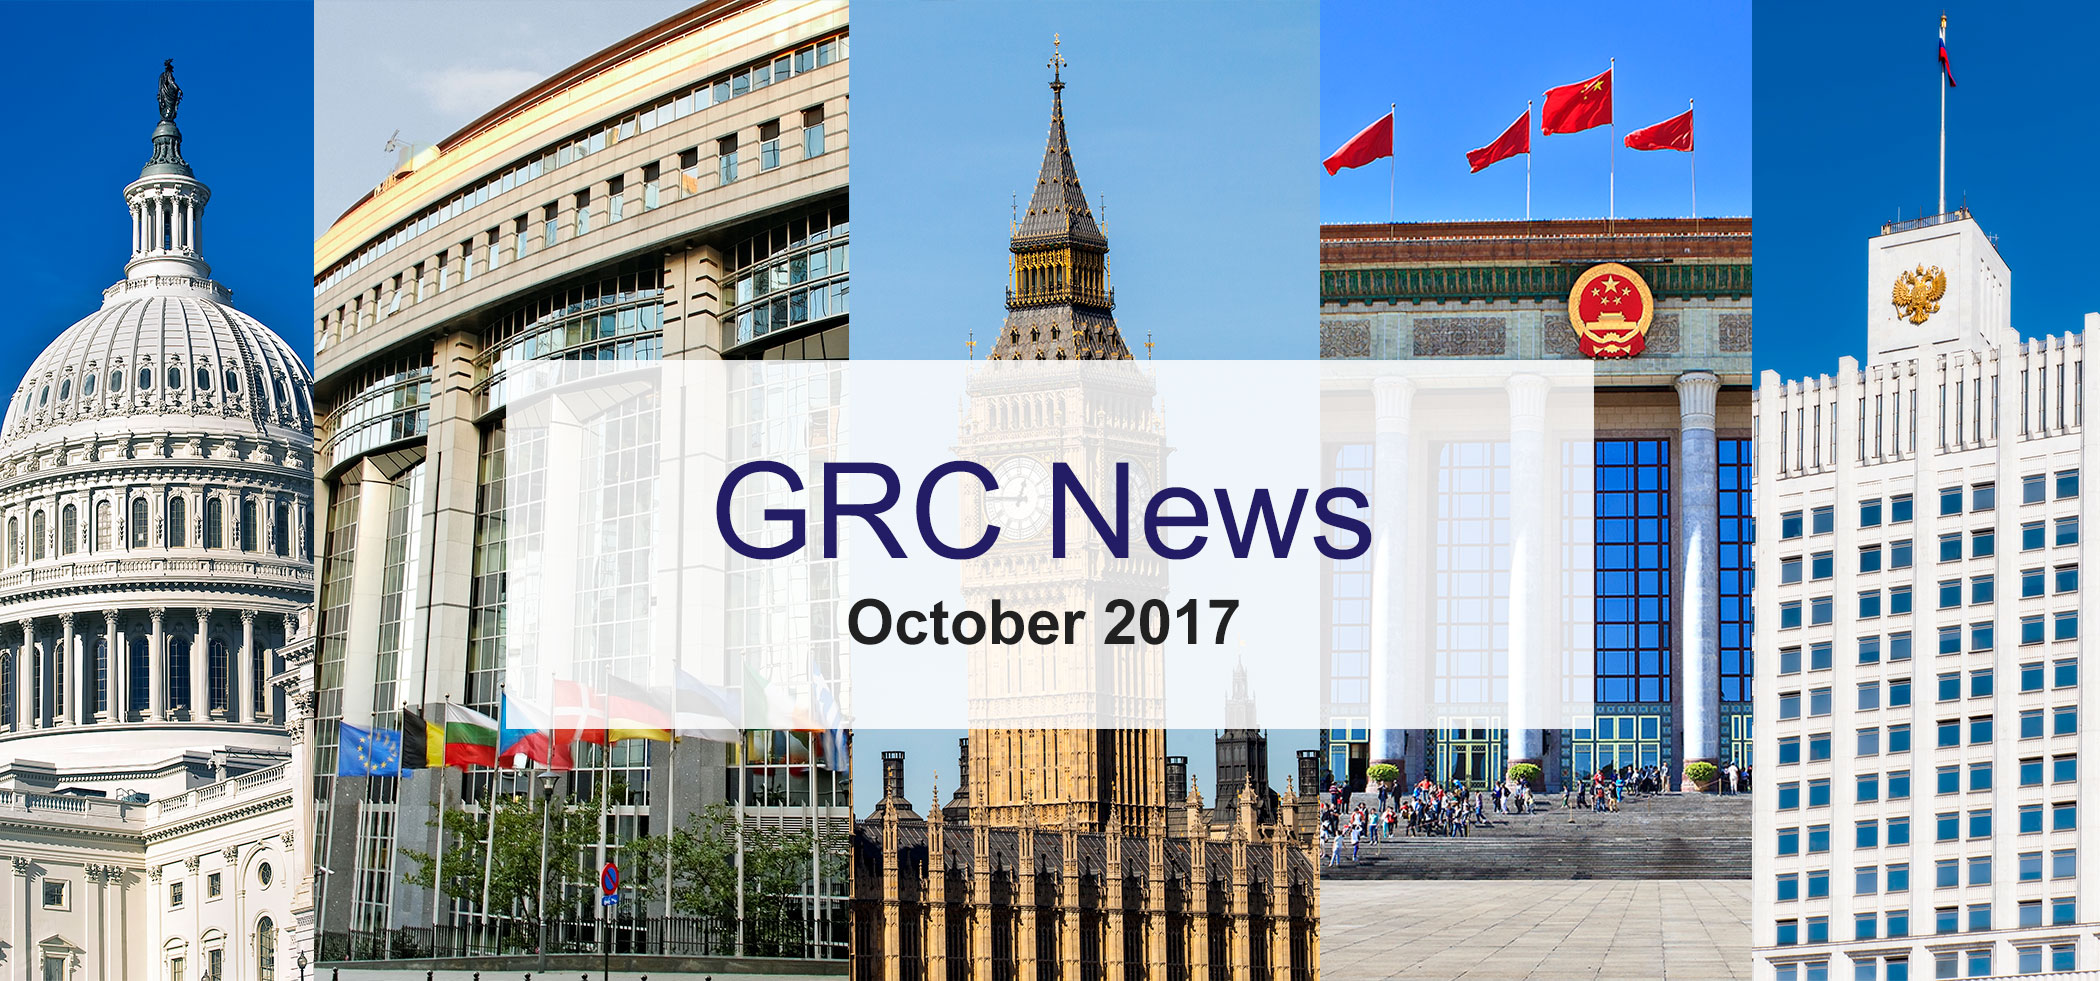 GRC-News-Oct.jpg